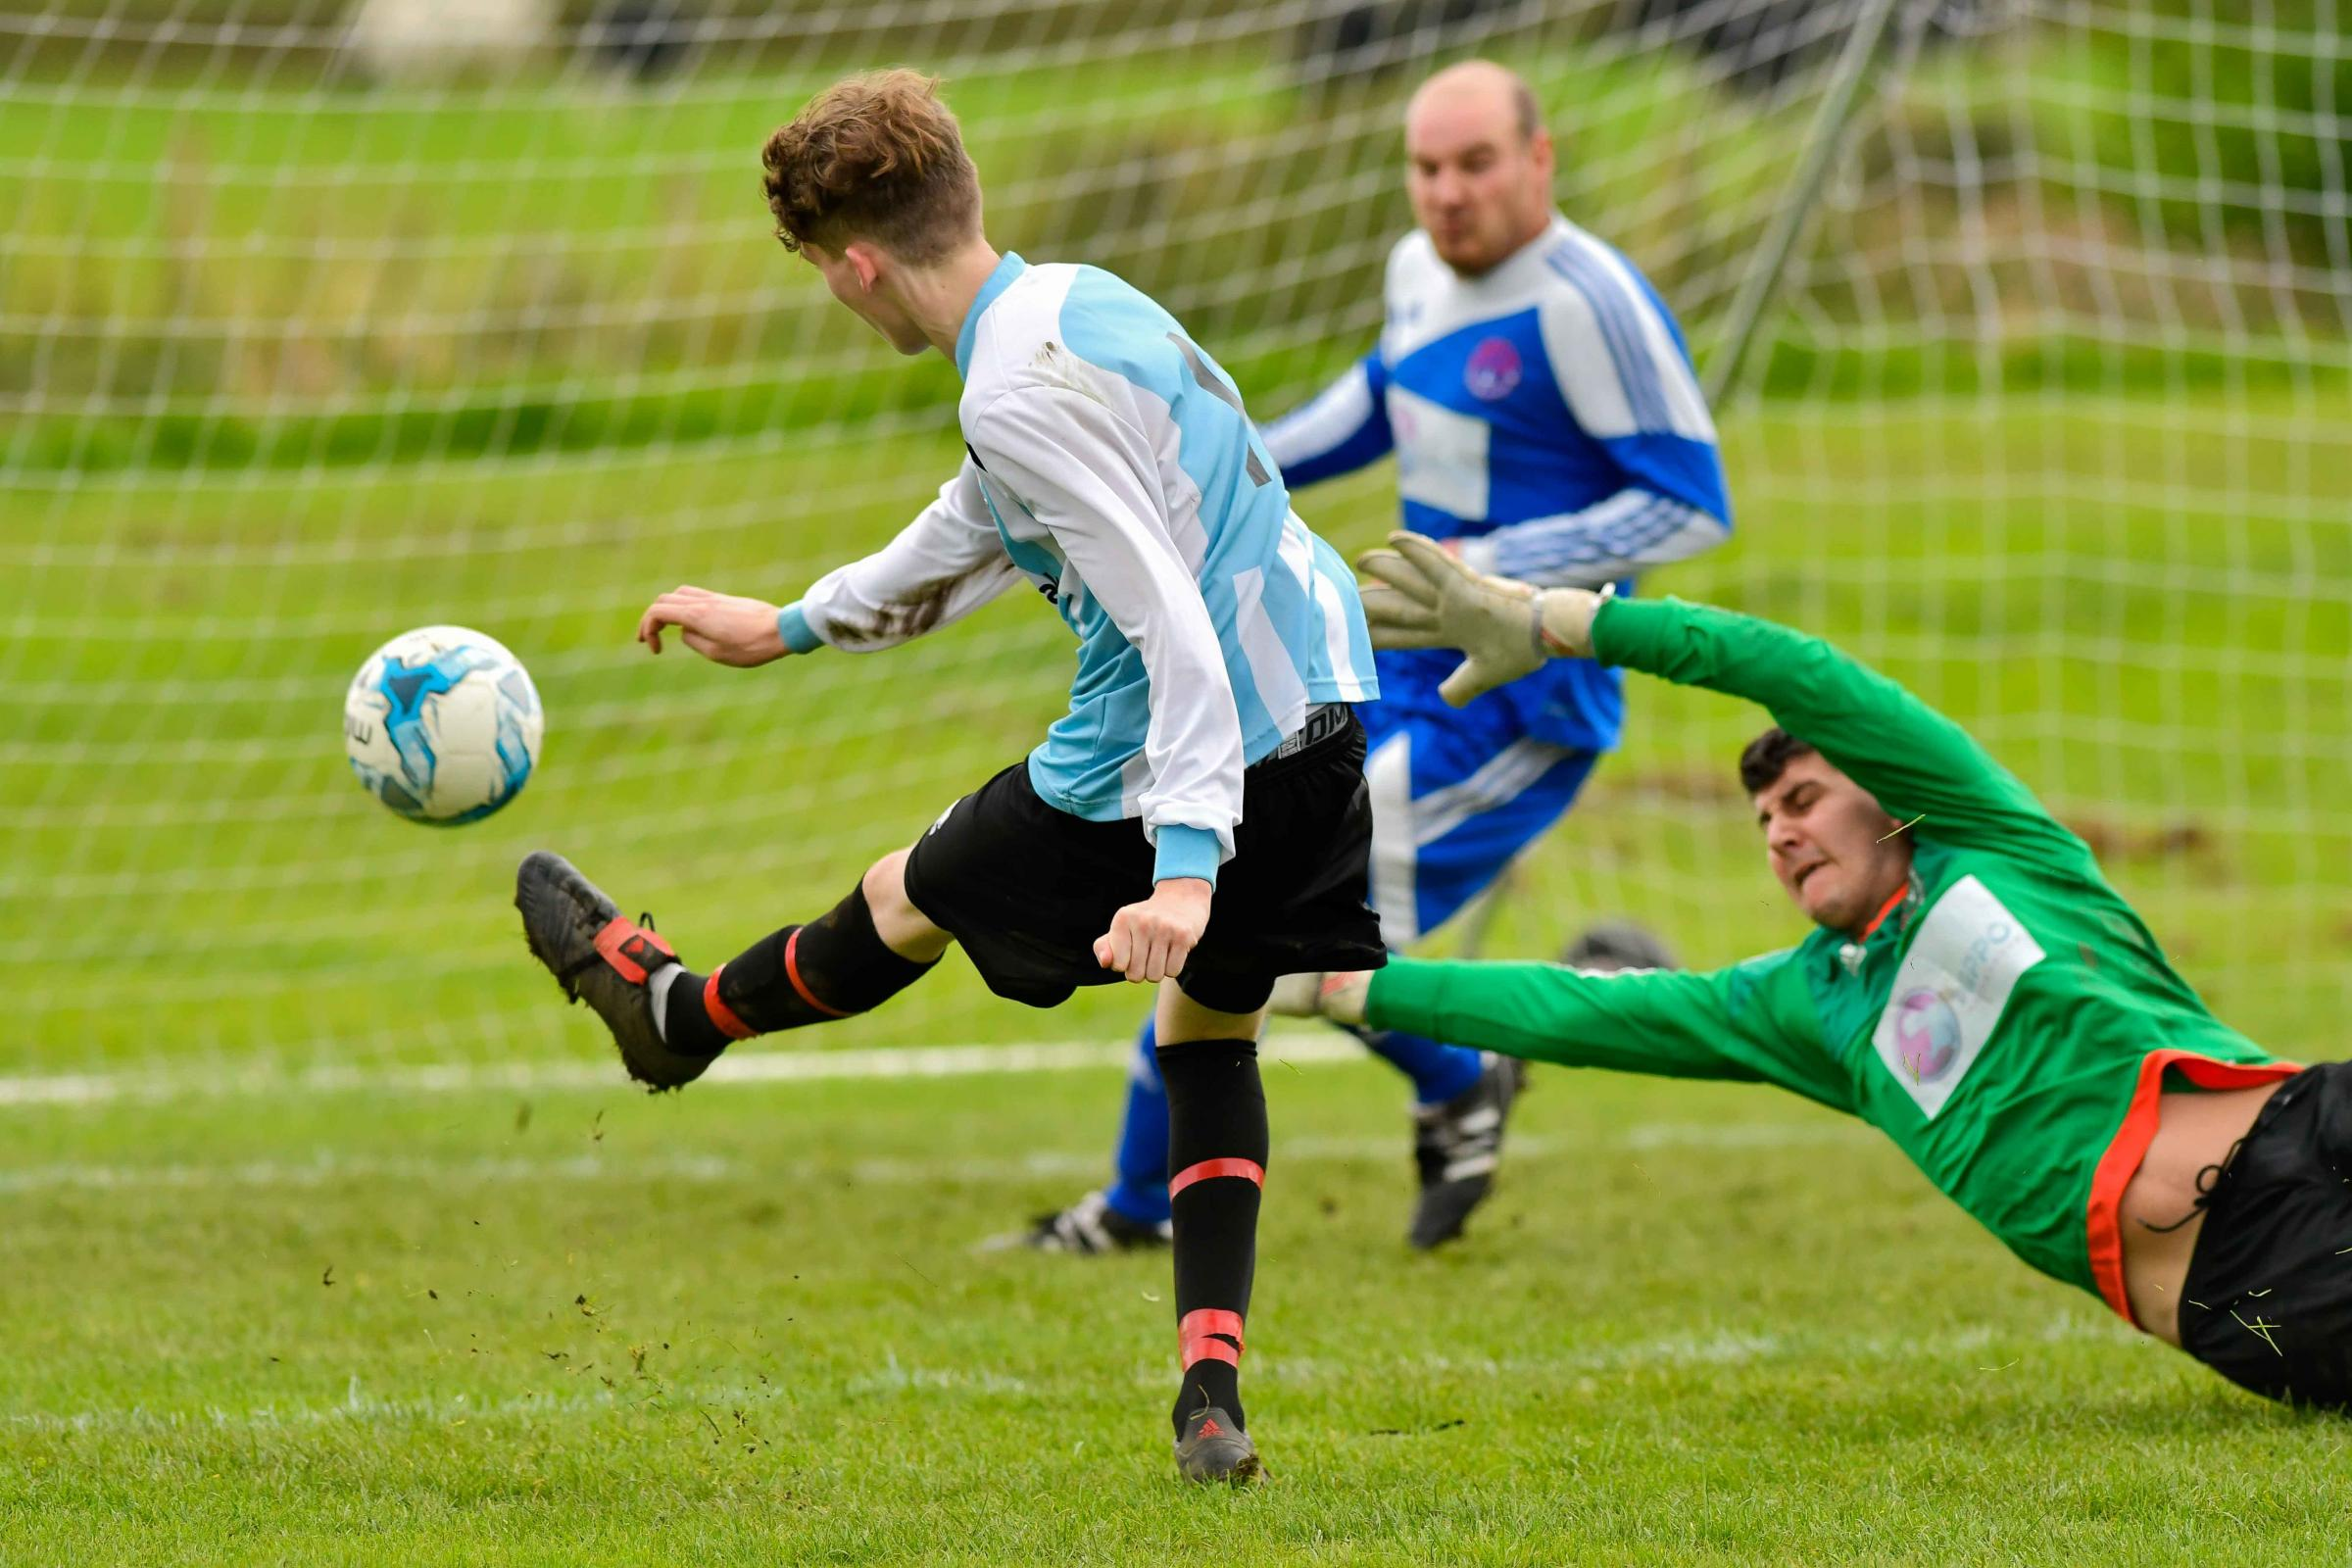 Josh Metcalfe scored a goal for Silsden Whitestar in their final game of the season last week. Picture: Andy Garbutt